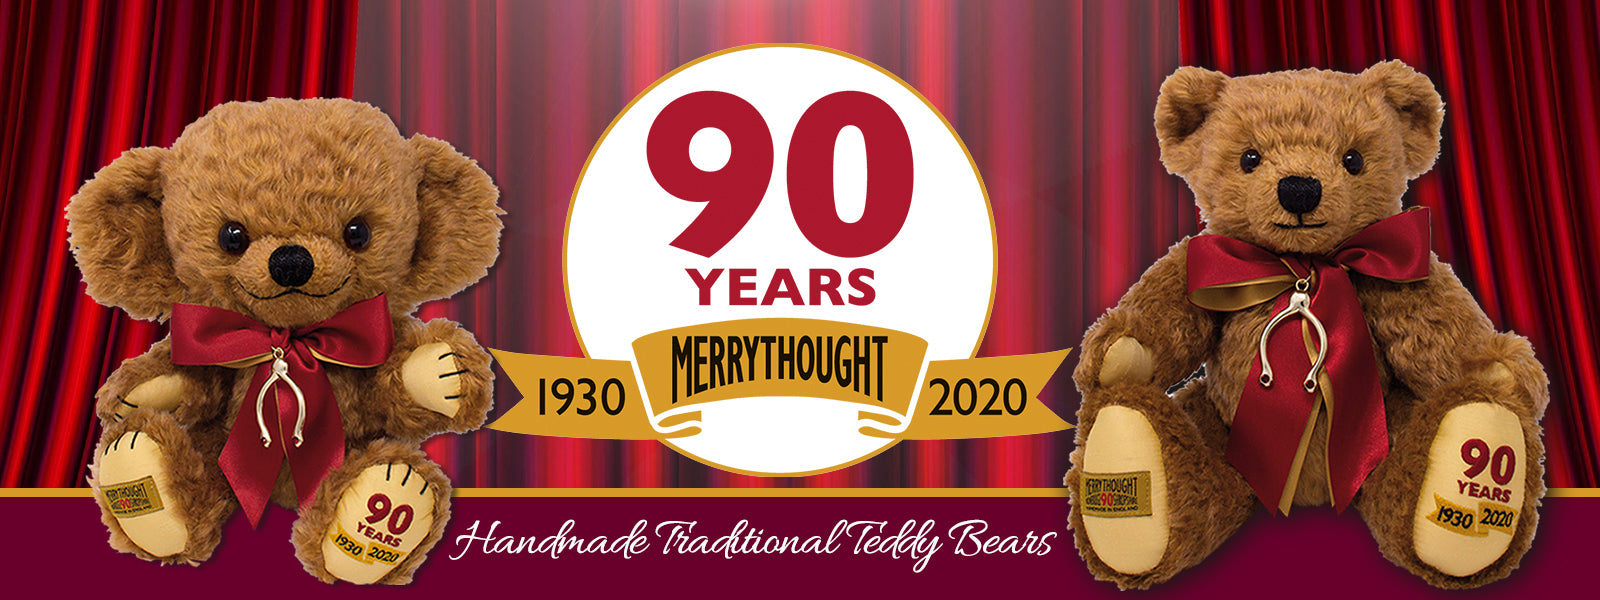 Celebrating 90 years of British Heritage with a visit to Merrythought Teddy Bears